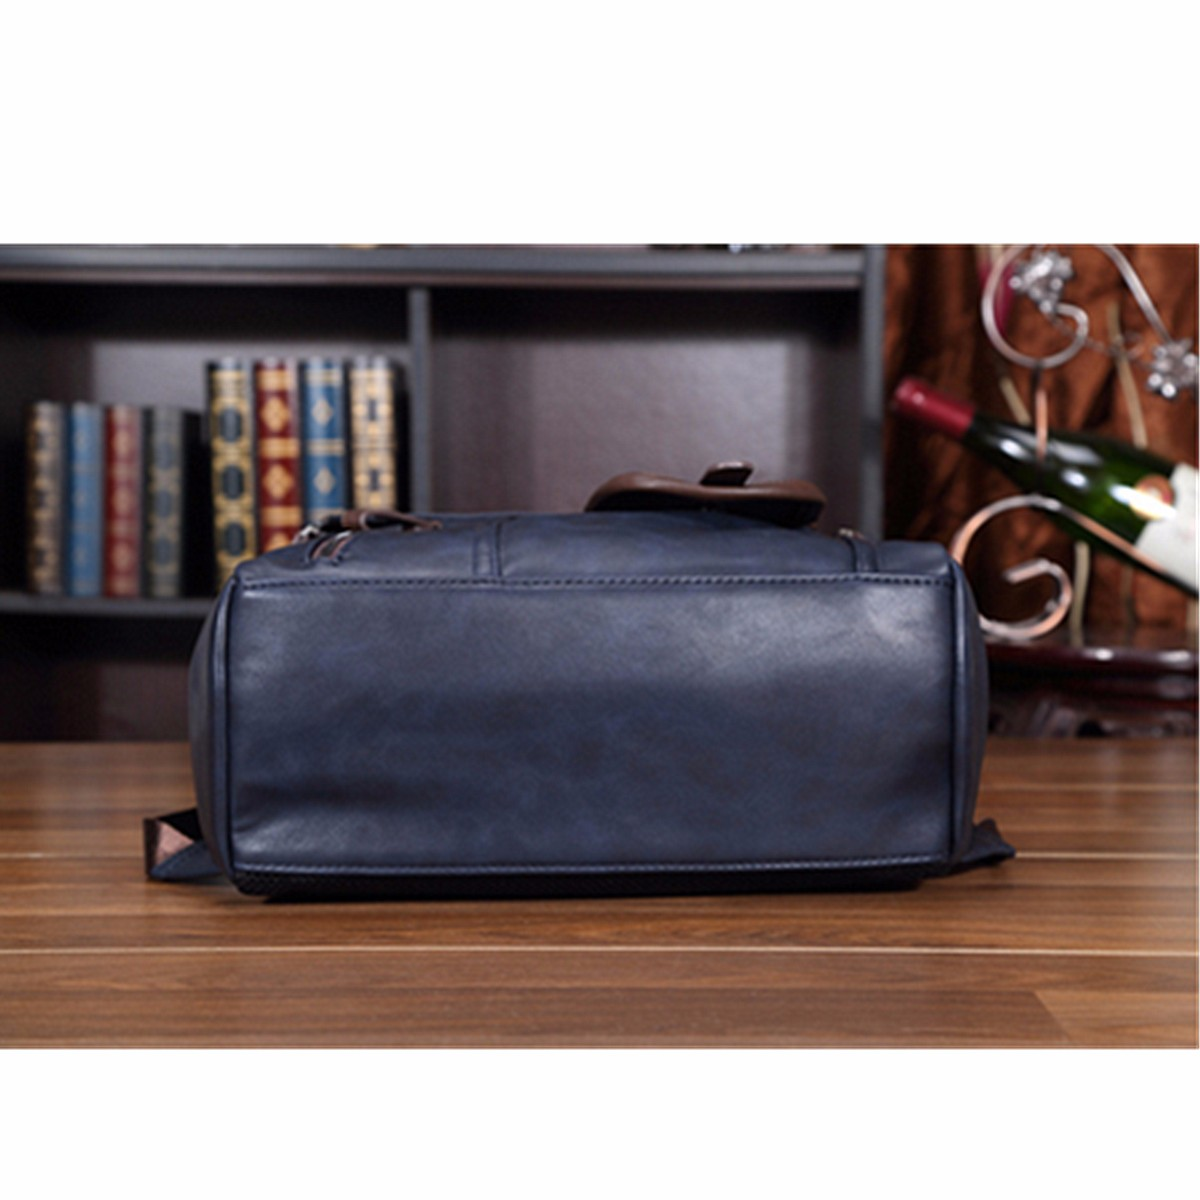 Men's Laptop Backpack PU Leather Fashion Vintage Travel Men Bag